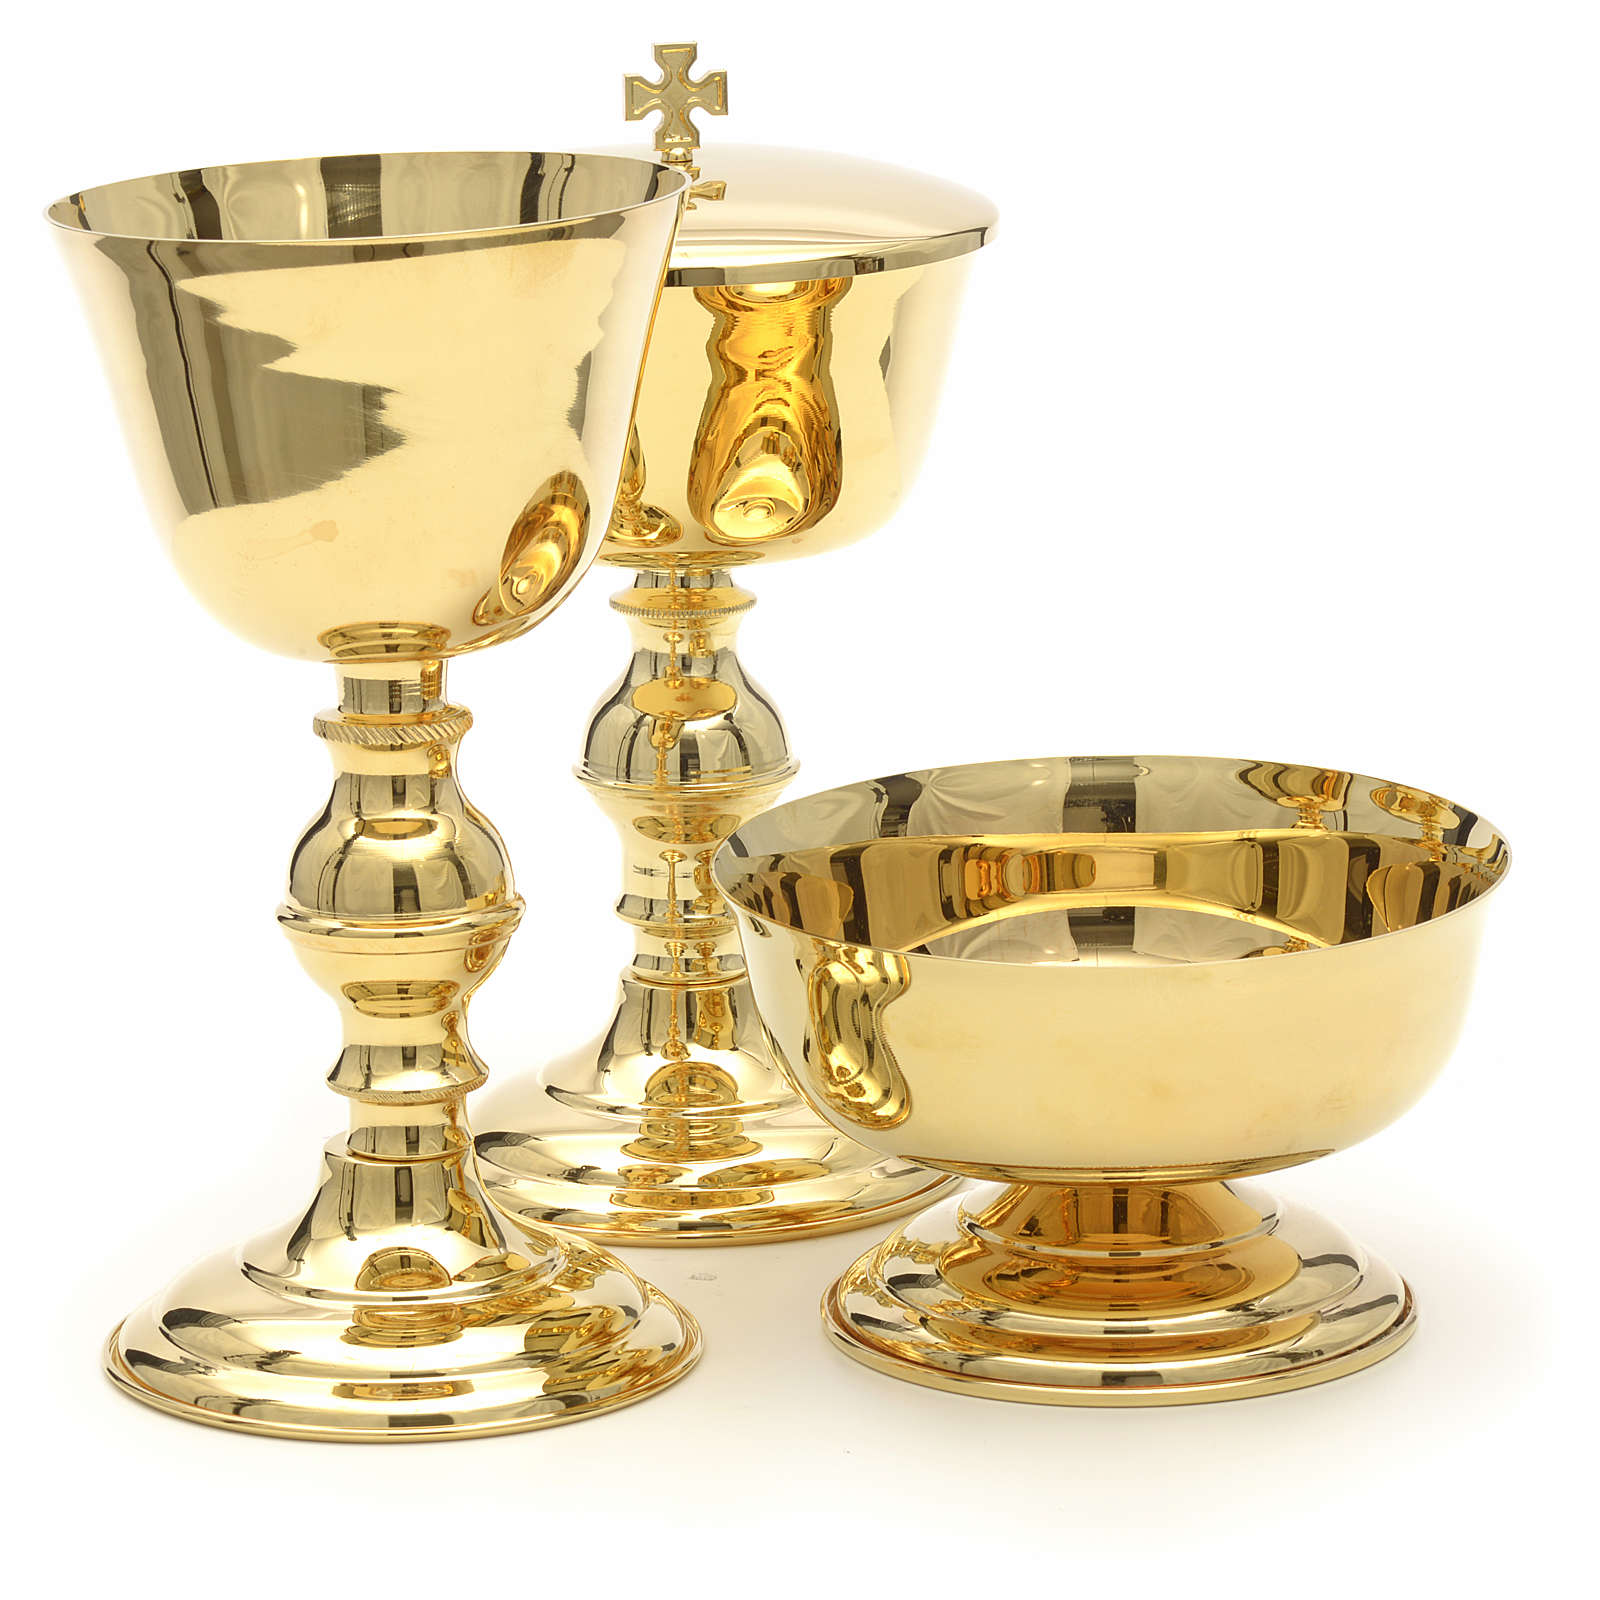 Chalice, ciborium and bowl with polished gold plated finish 4